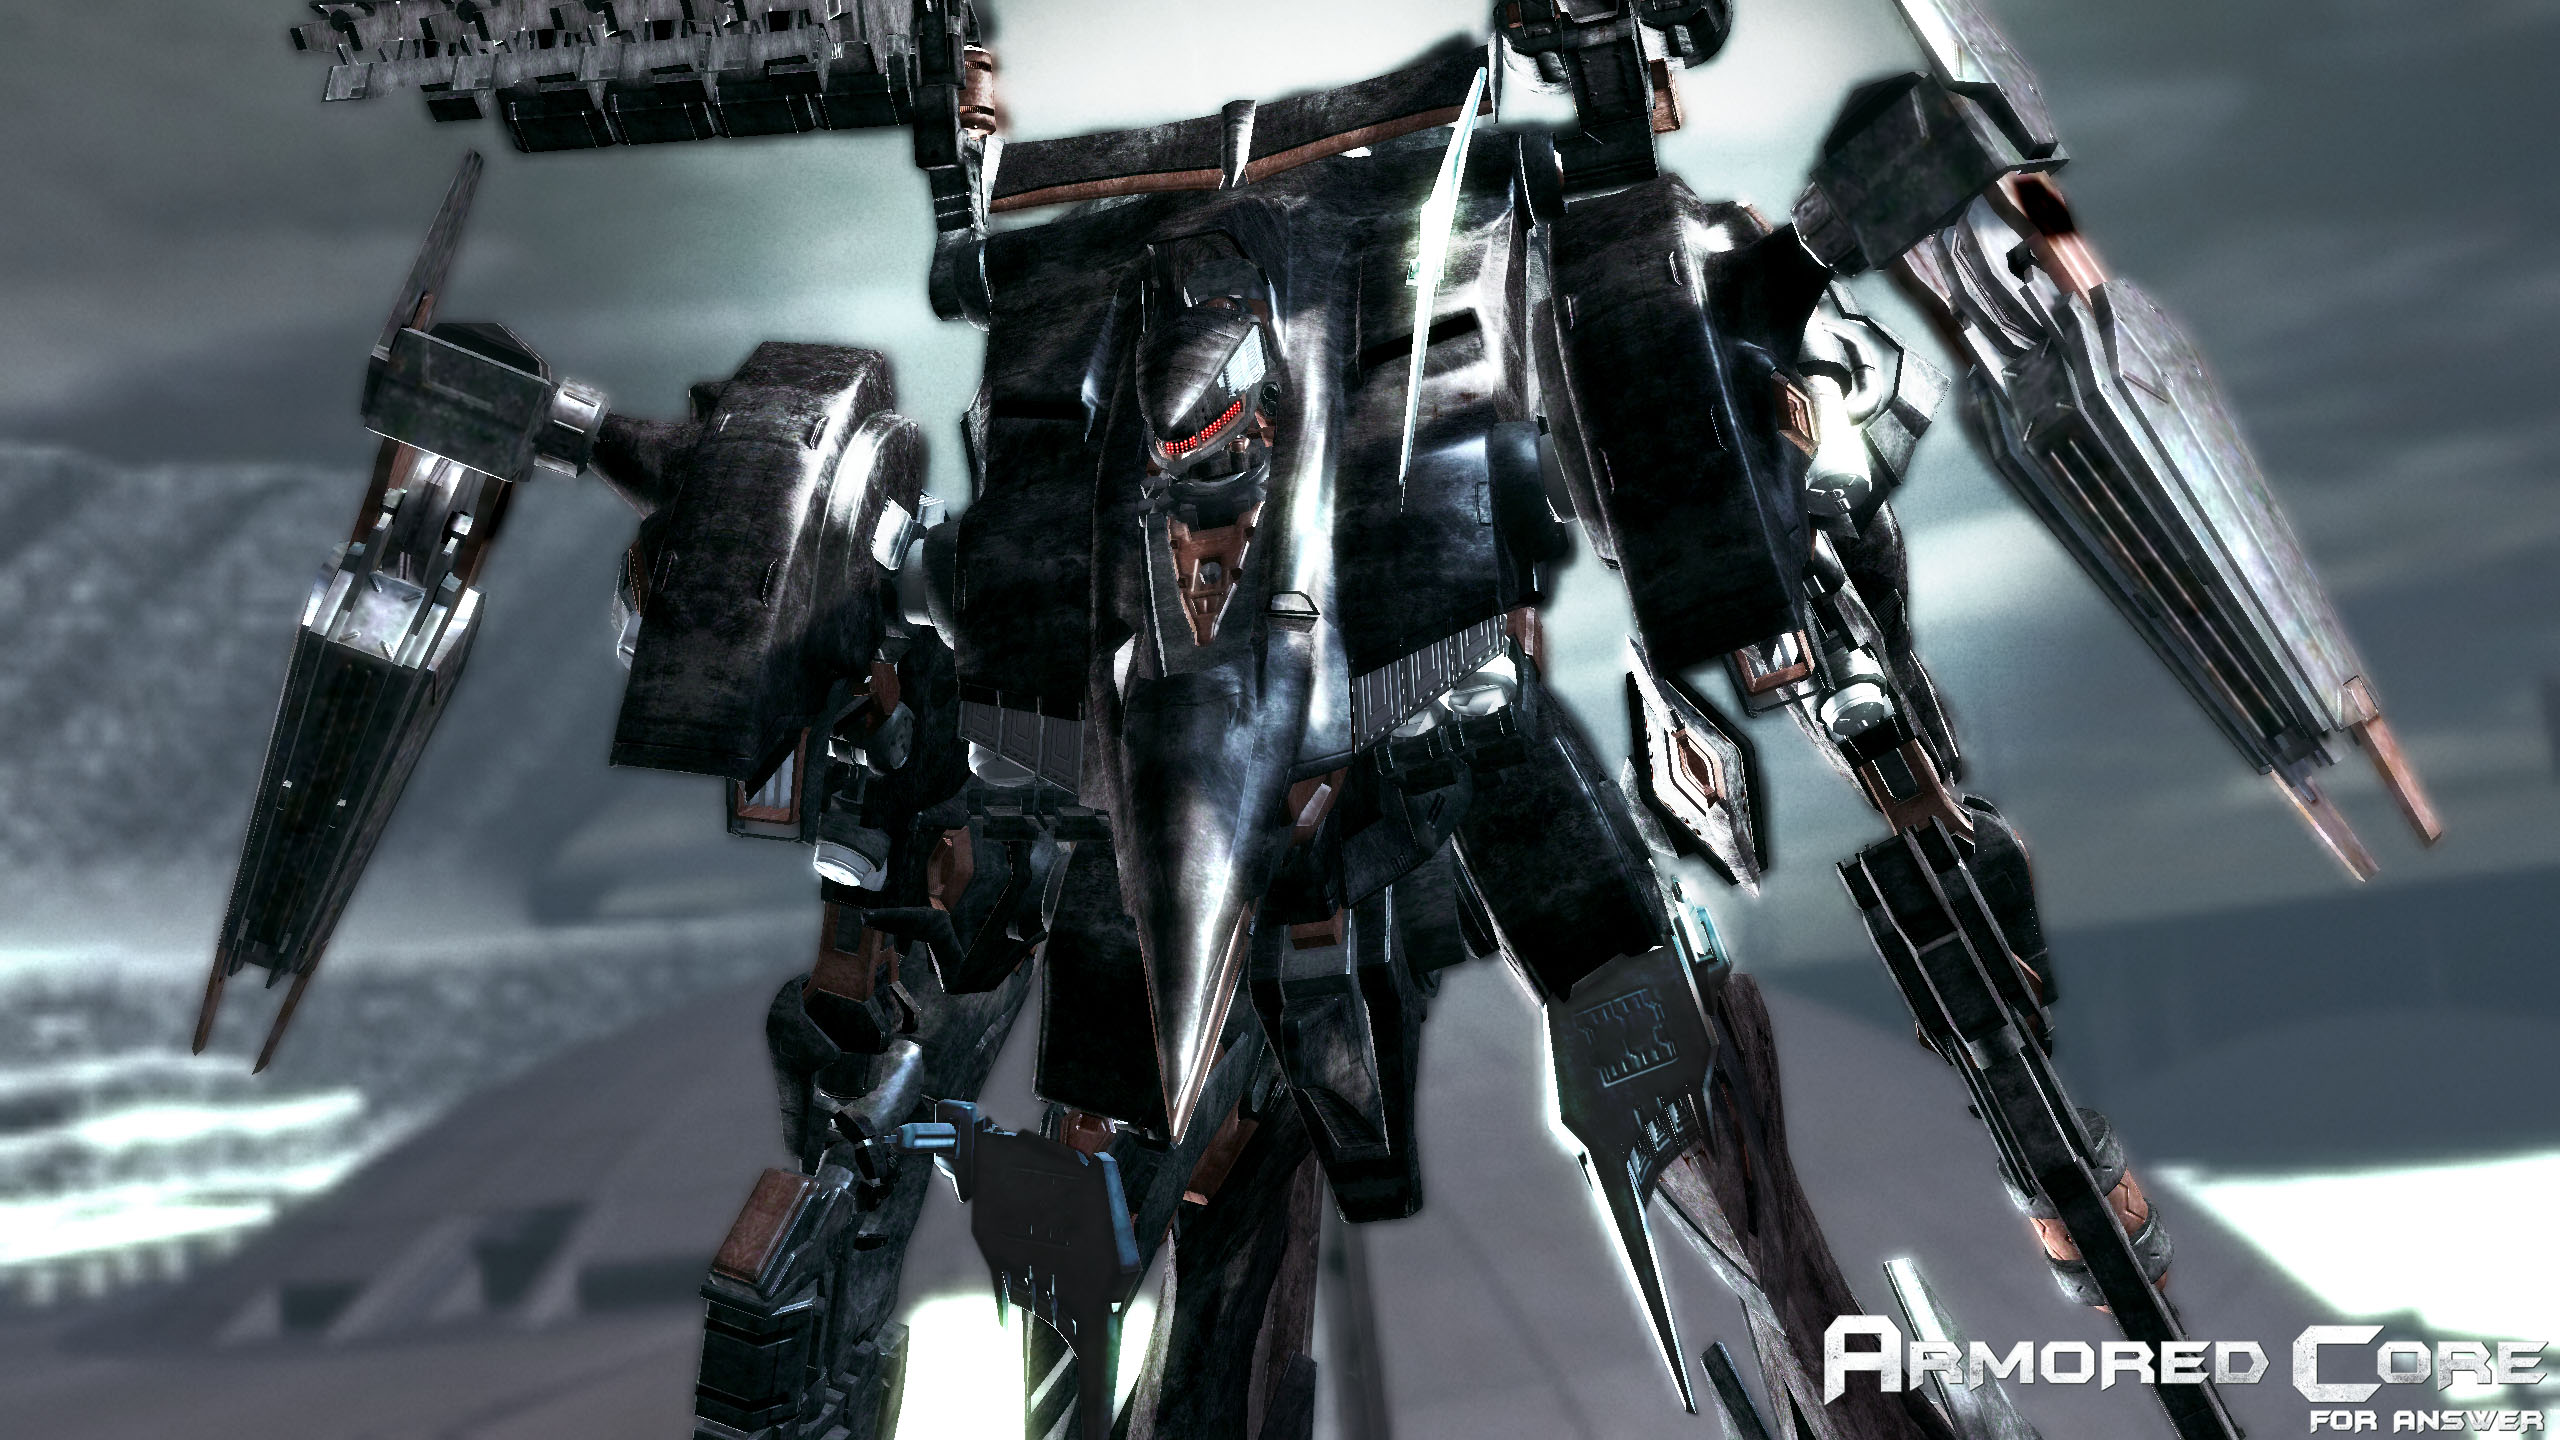 Armored Kodakan Armored Core For Answer Thermidor Inaction